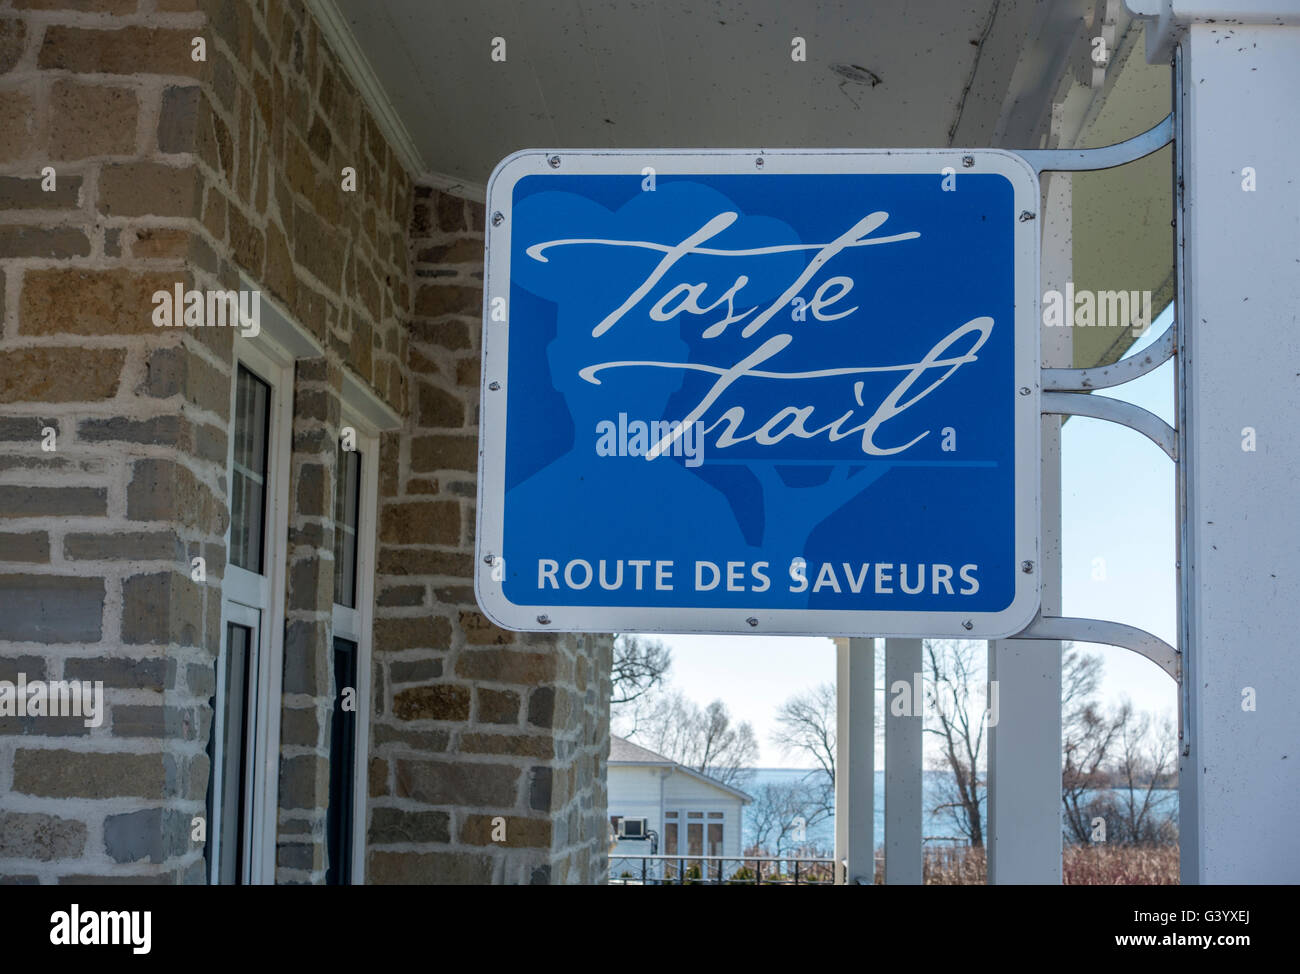 Taste Trail Sign In Prince Edward County Ontario Canada, The Taste Trail Includes Wineries And Cheese Makers - Stock Image